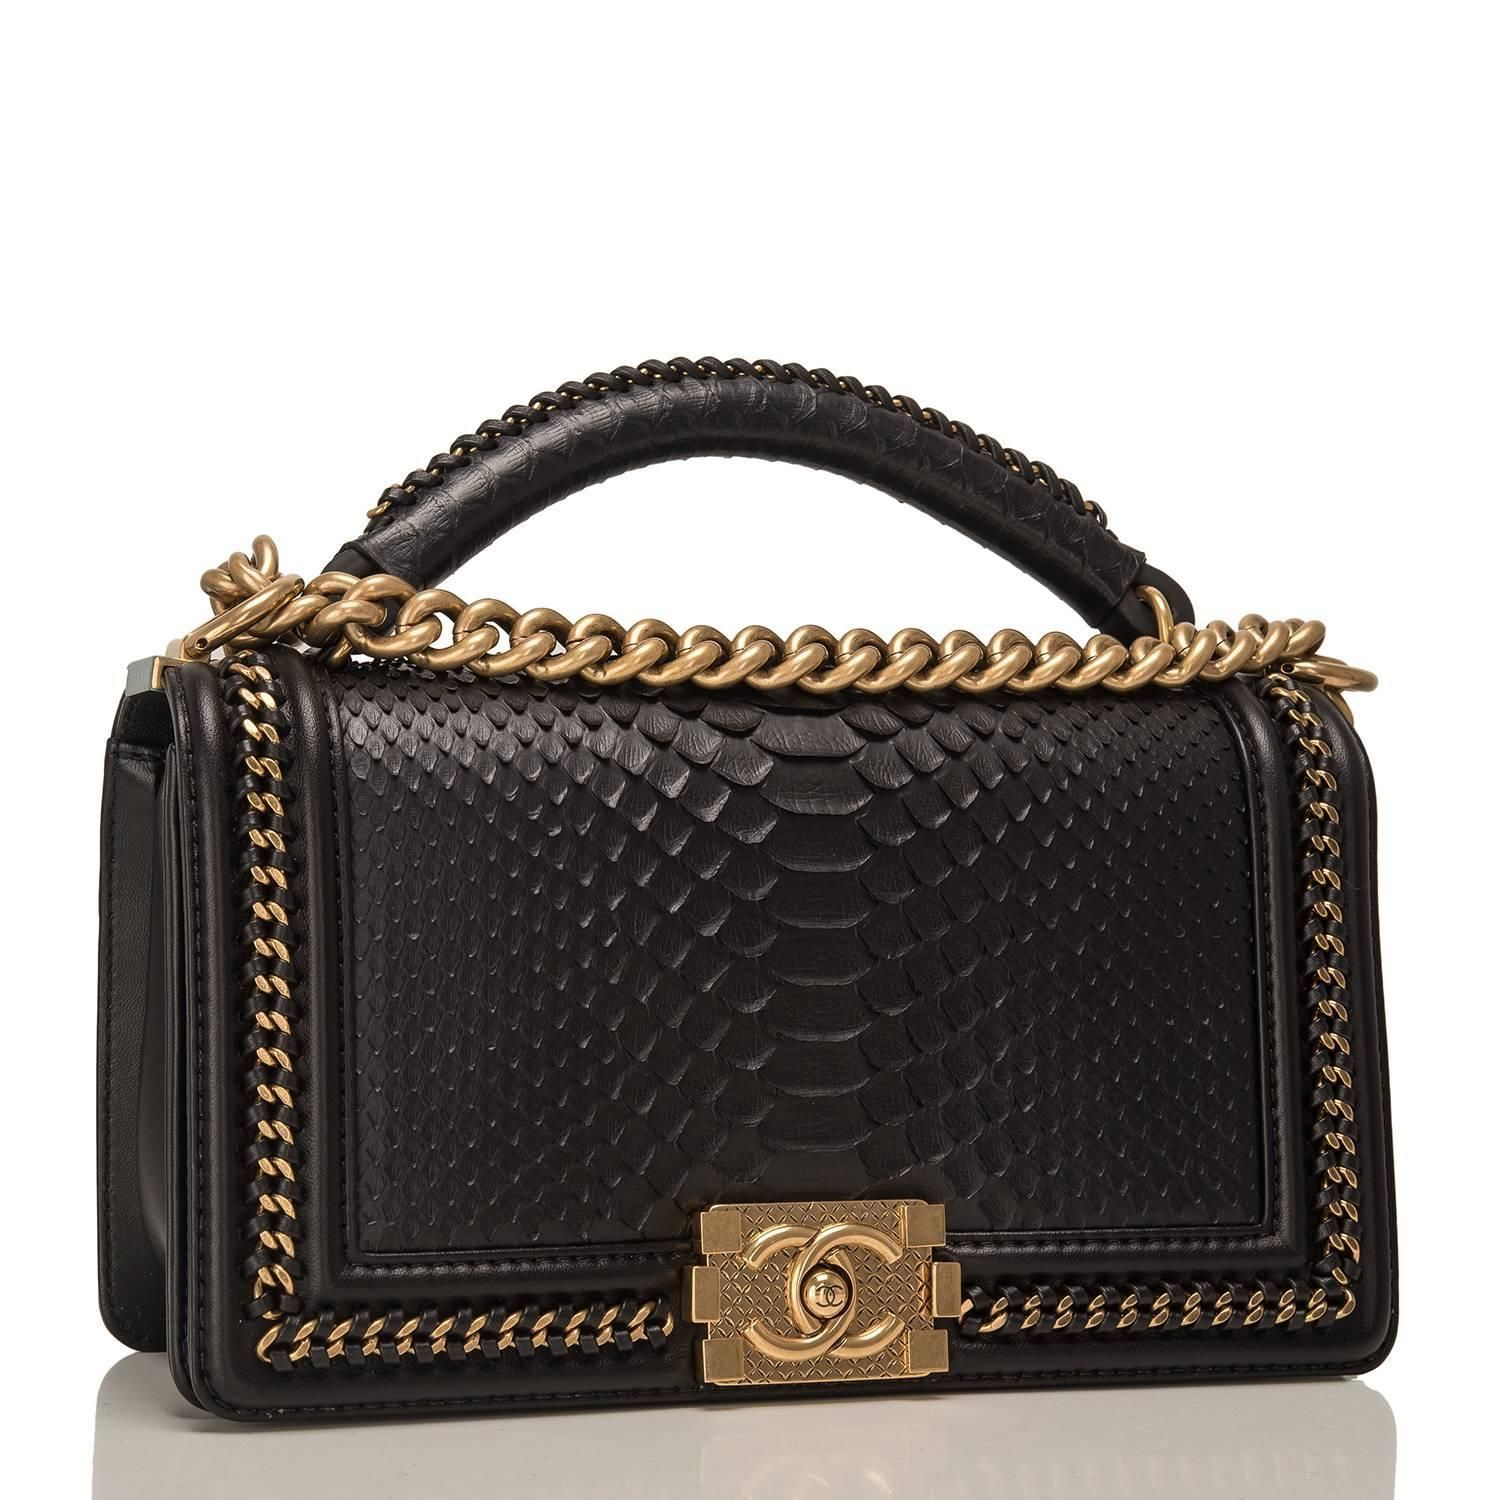 7367155cae1c Chanel Black Python Medium Boy Bag with Handle | Sac à main | Bags ...